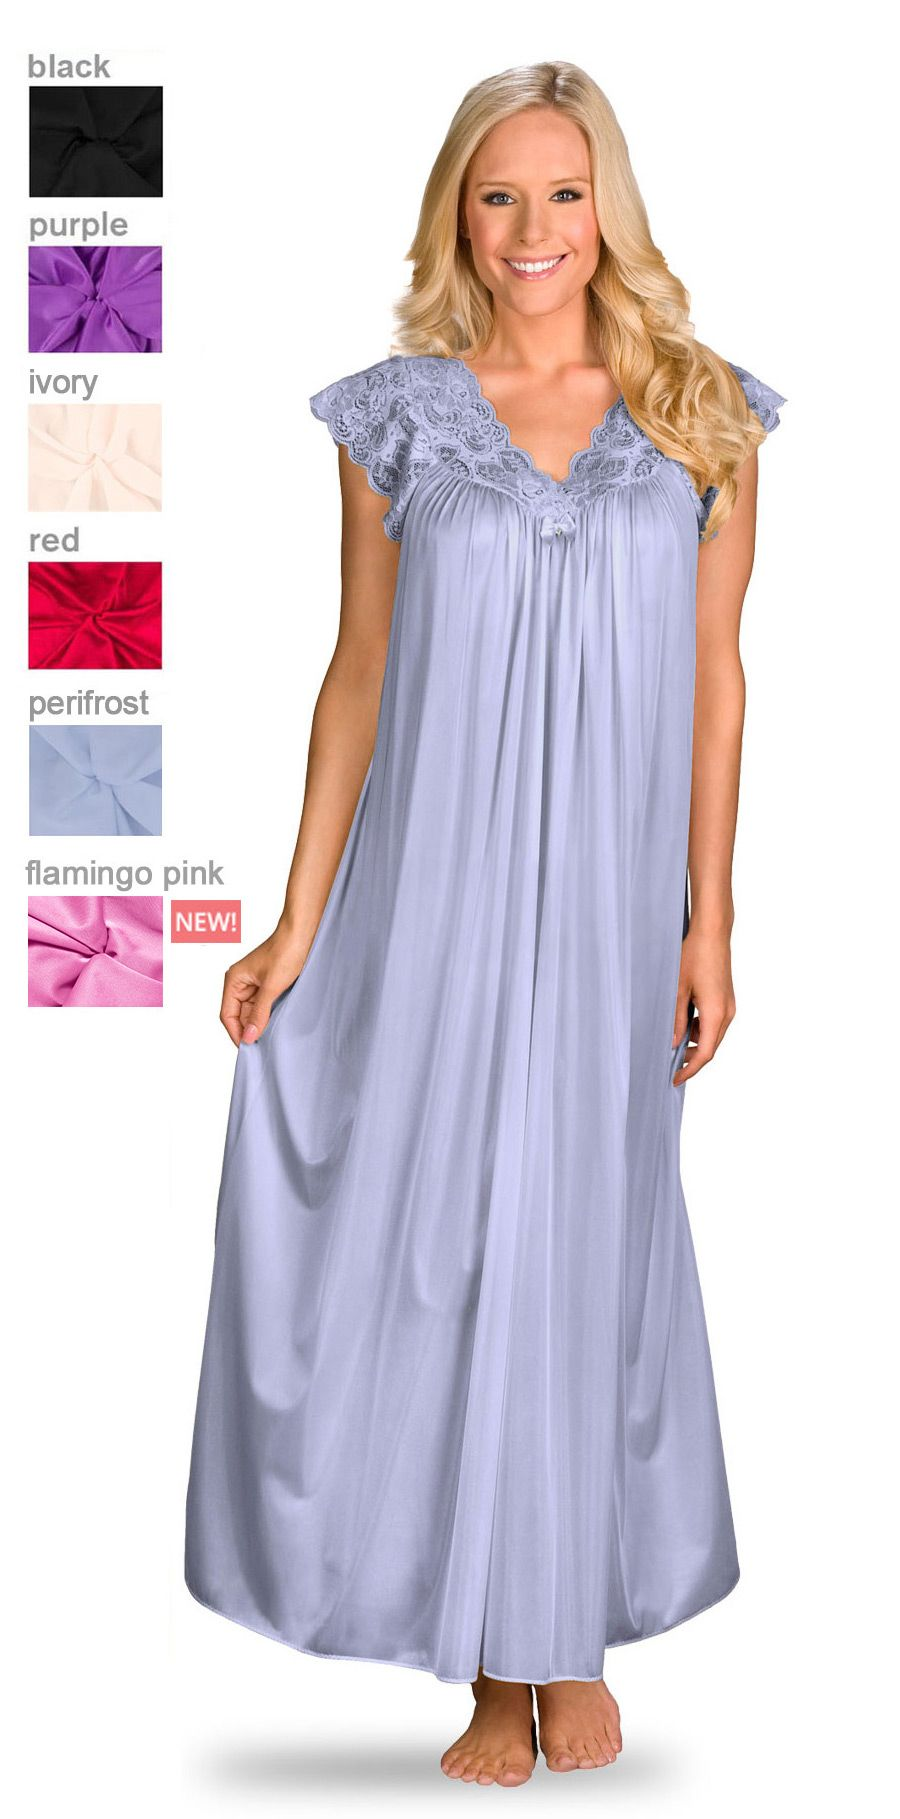 Women\'s Long Cap Sleeve Nightgown | Pinterest | Silhouettes ...